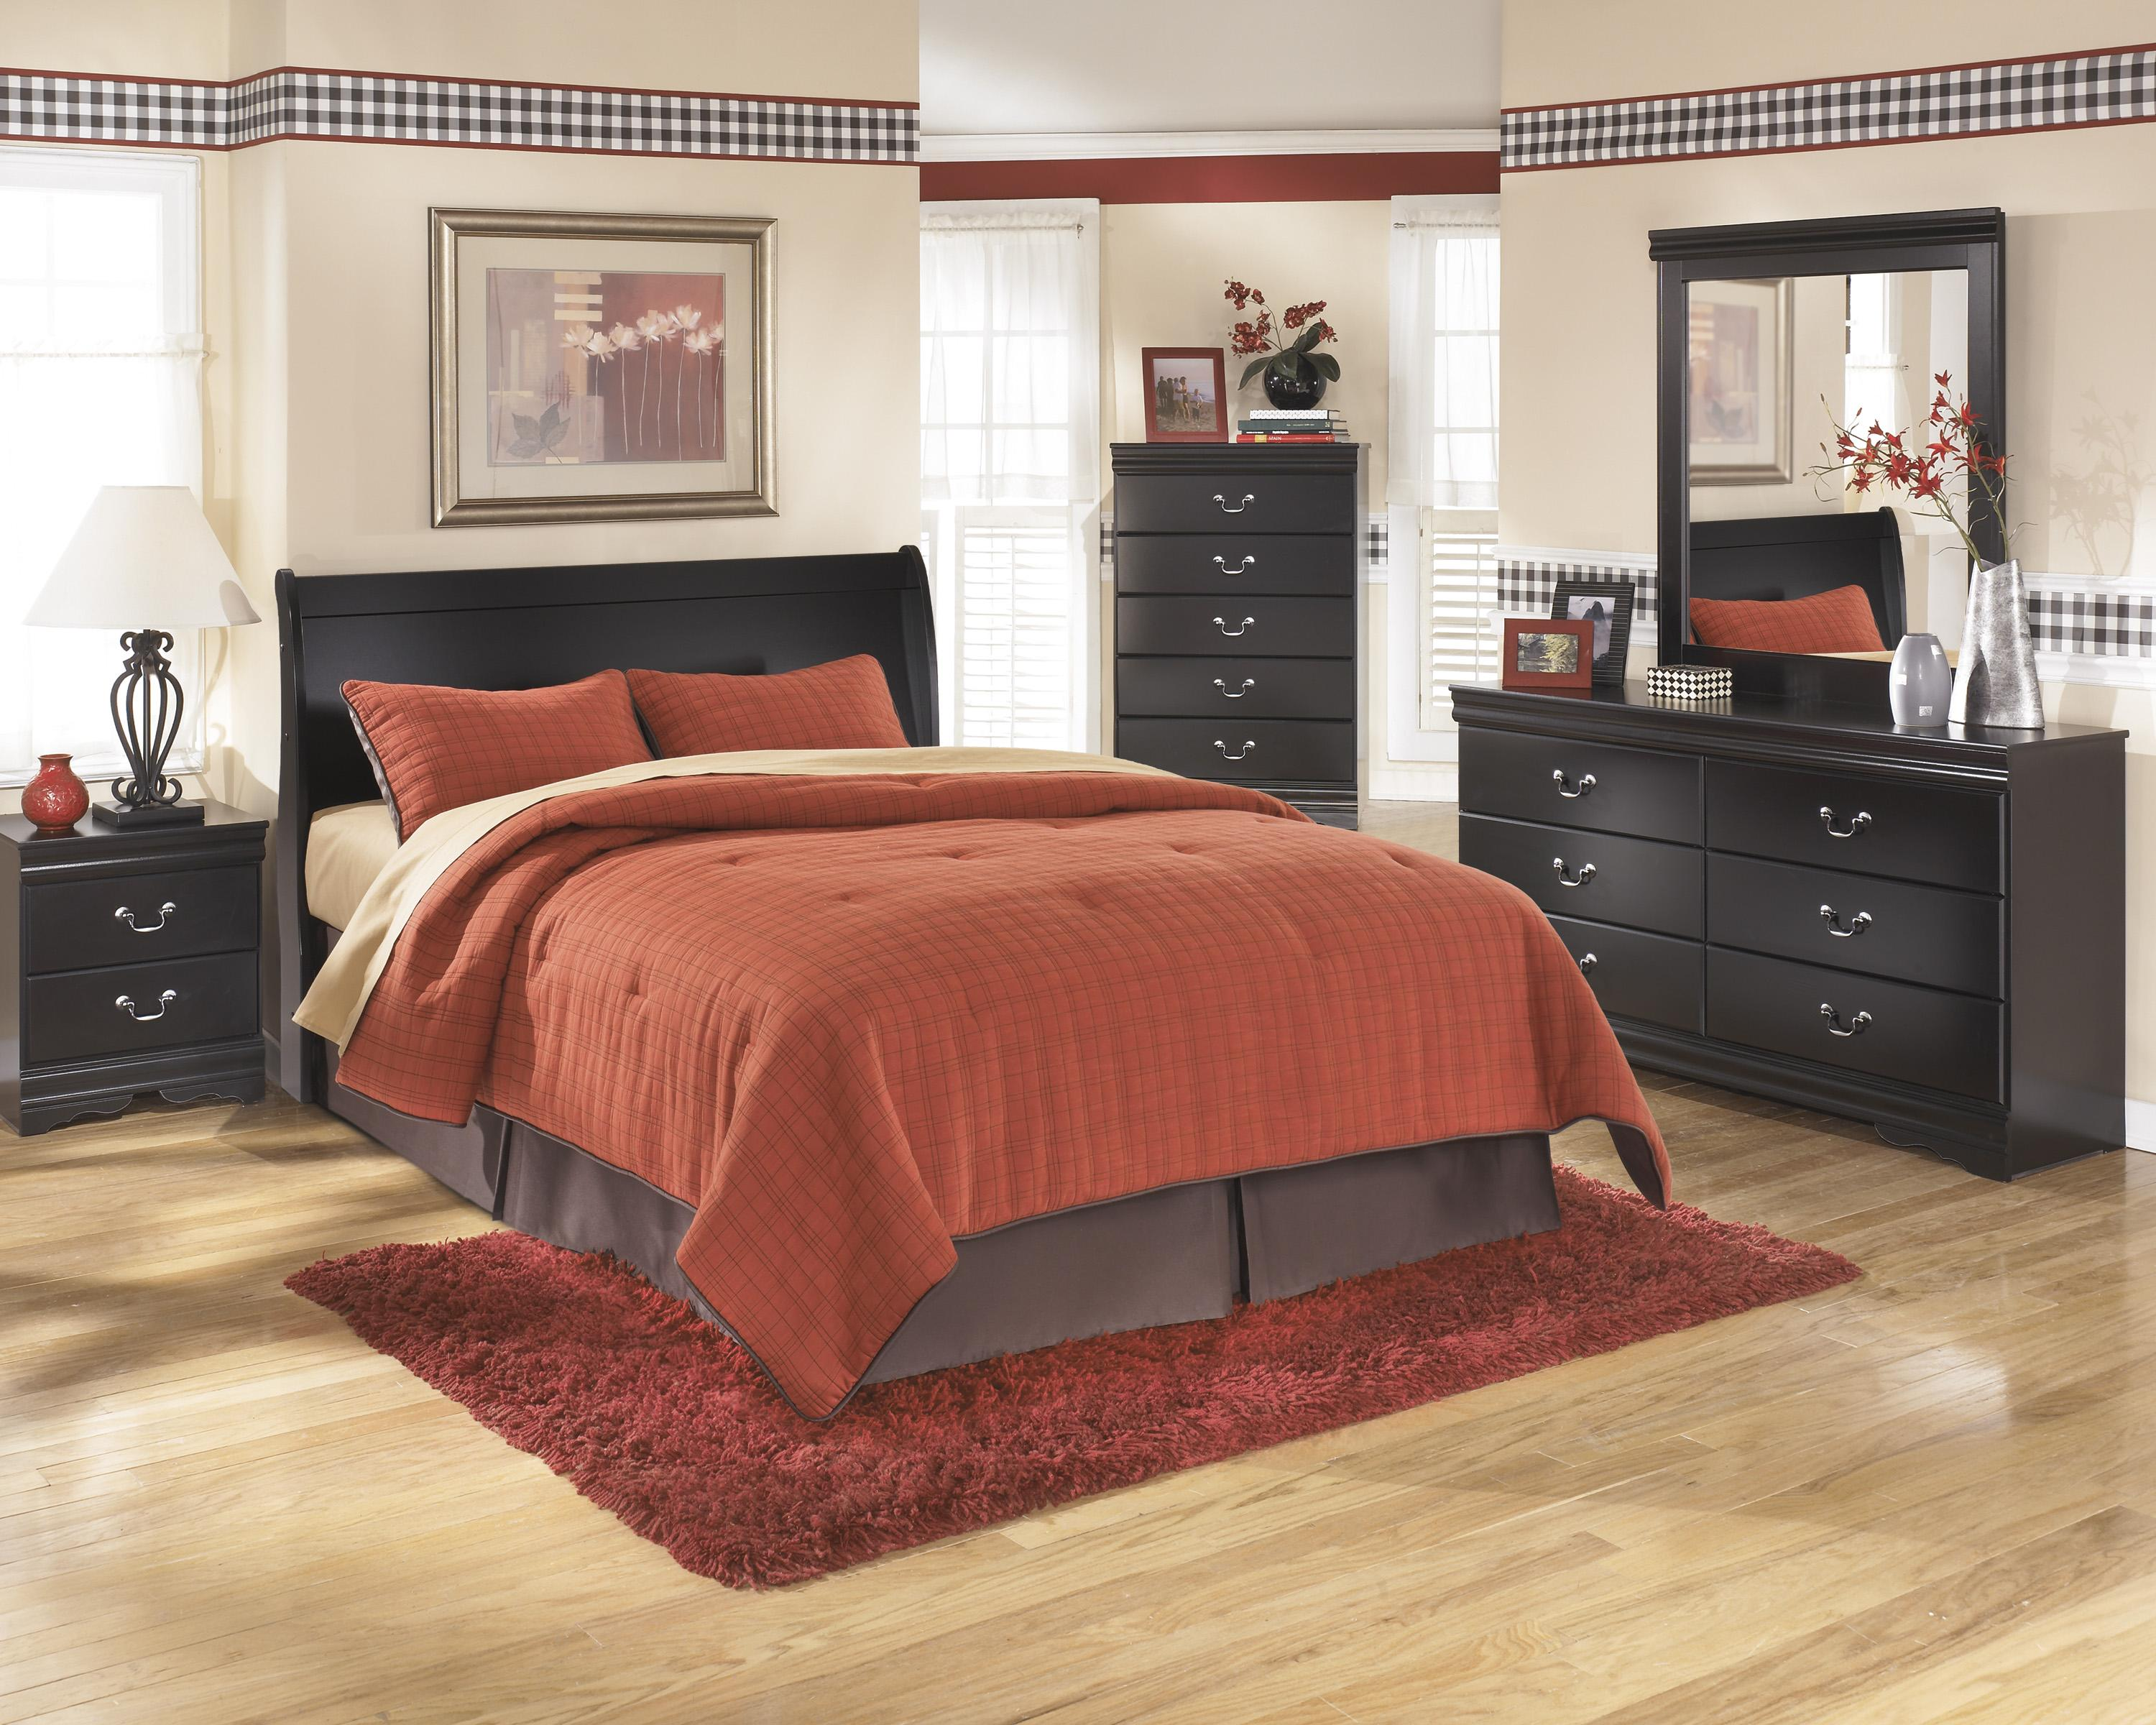 Huey Vineyard King Bedroom Group by Signature Design by Ashley at Sparks HomeStore